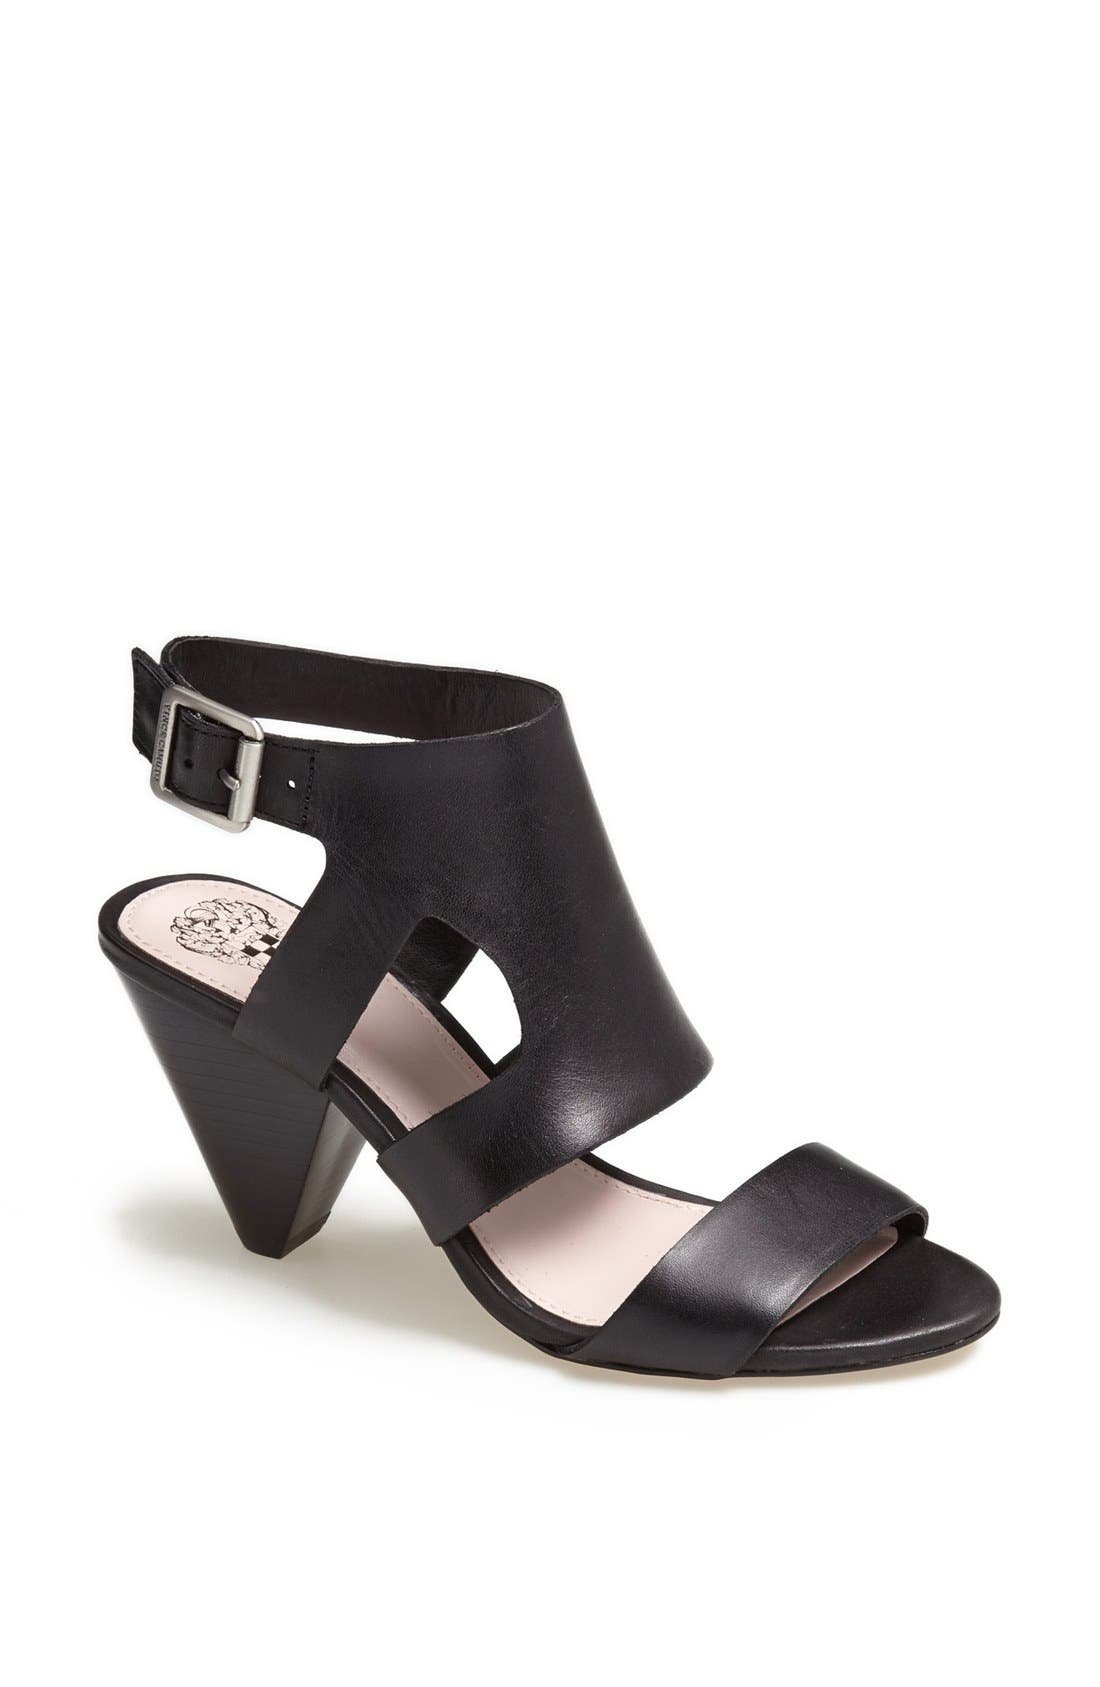 Alternate Image 1 Selected - Vince Camuto 'Endell' Leather Sandal